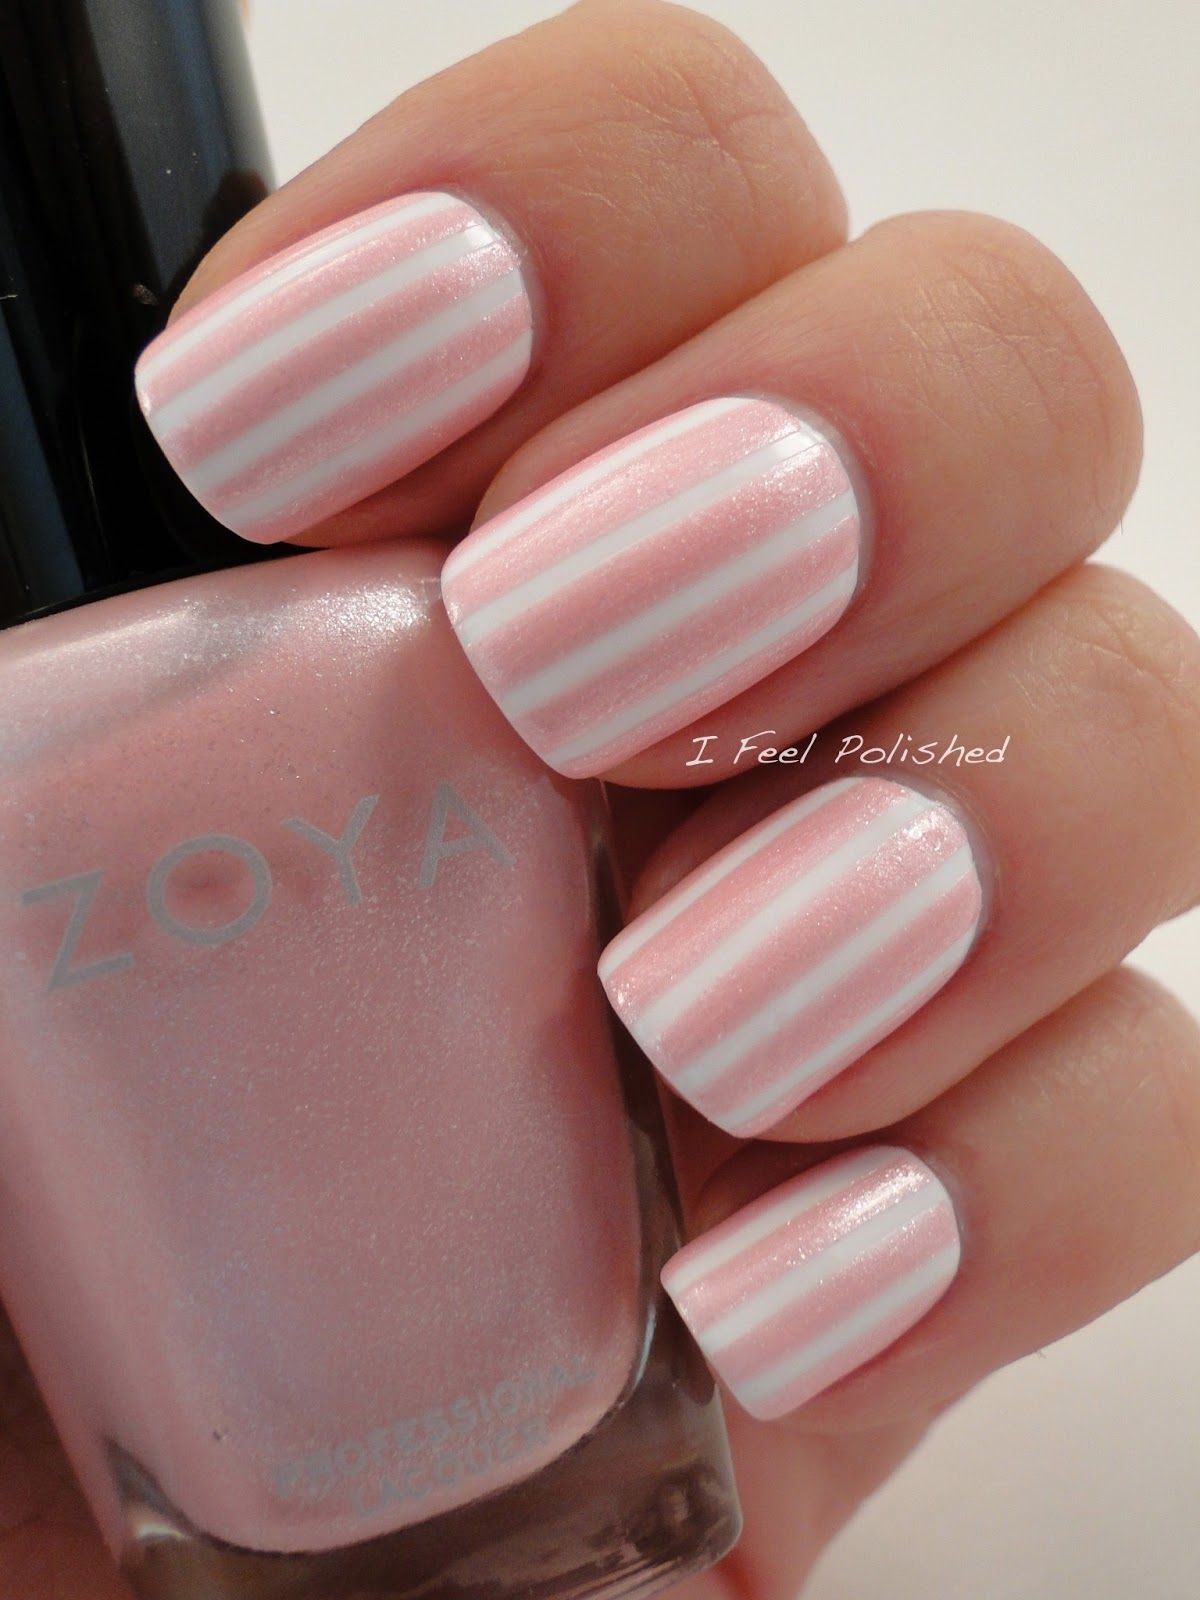 White and Pink Striped Nails - DIY NAIL ART DESIGNS | Nails ...